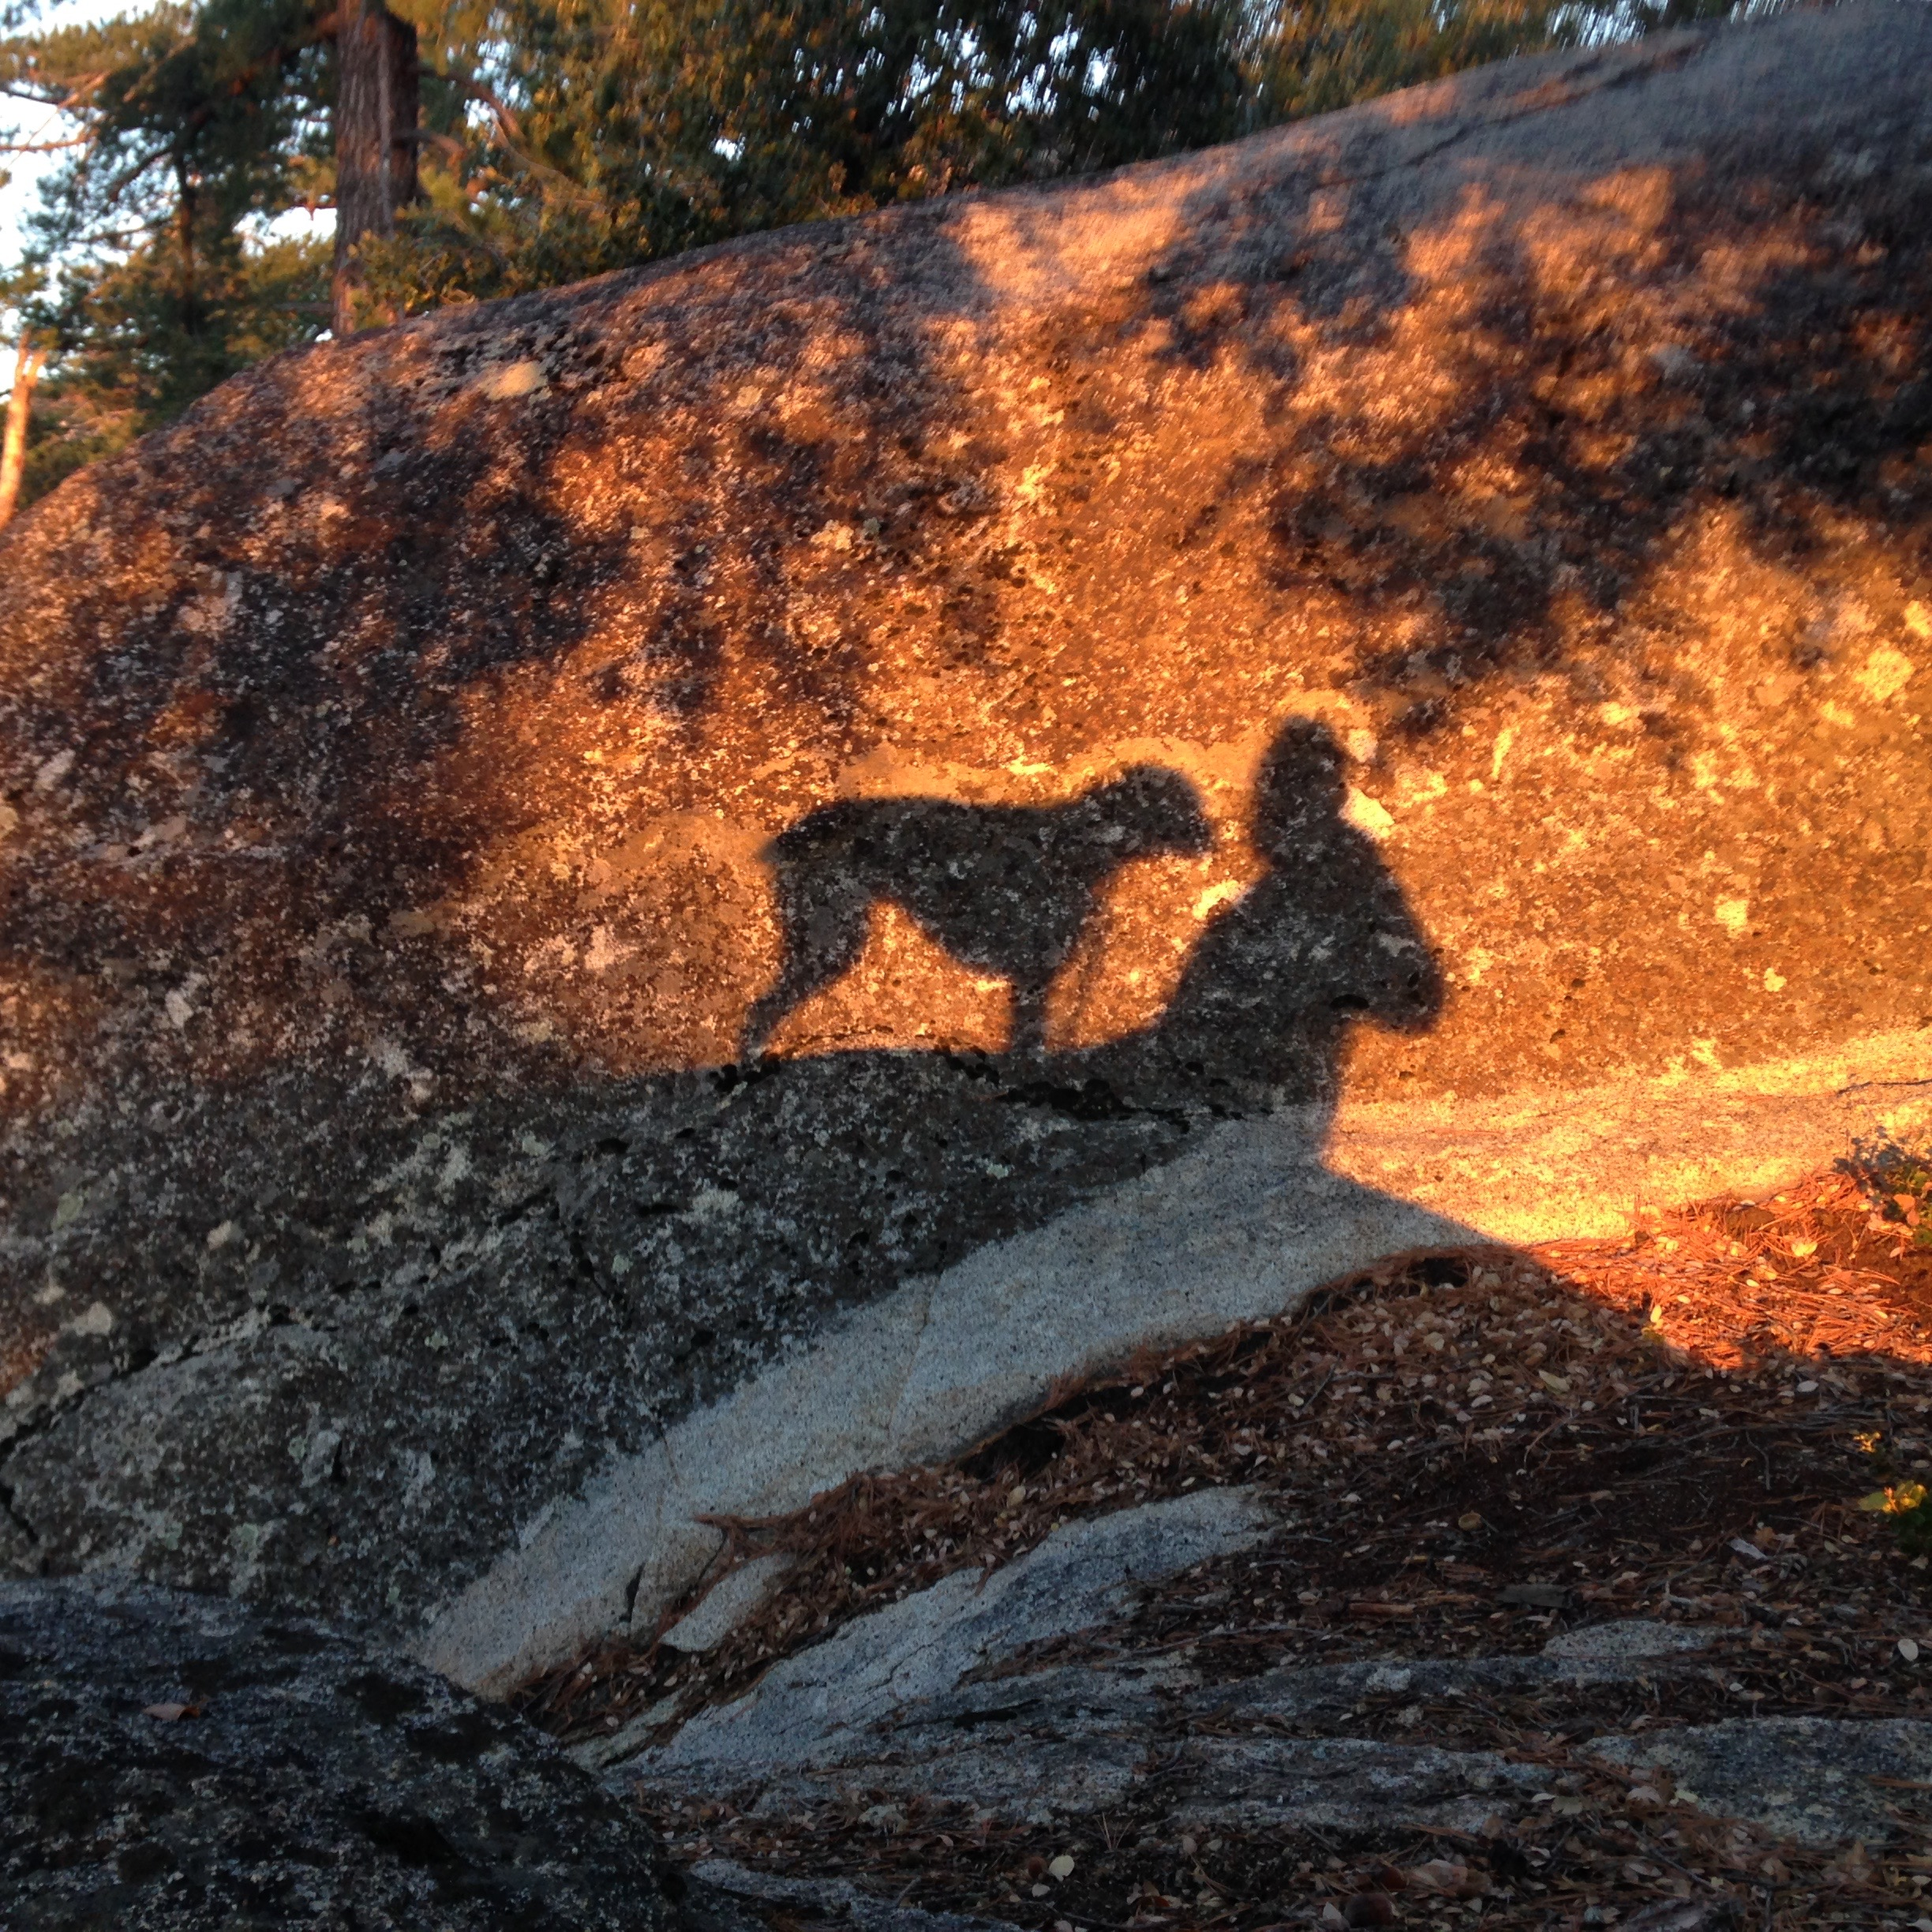 At sunset in the SoCal mountains. Best friends forever!